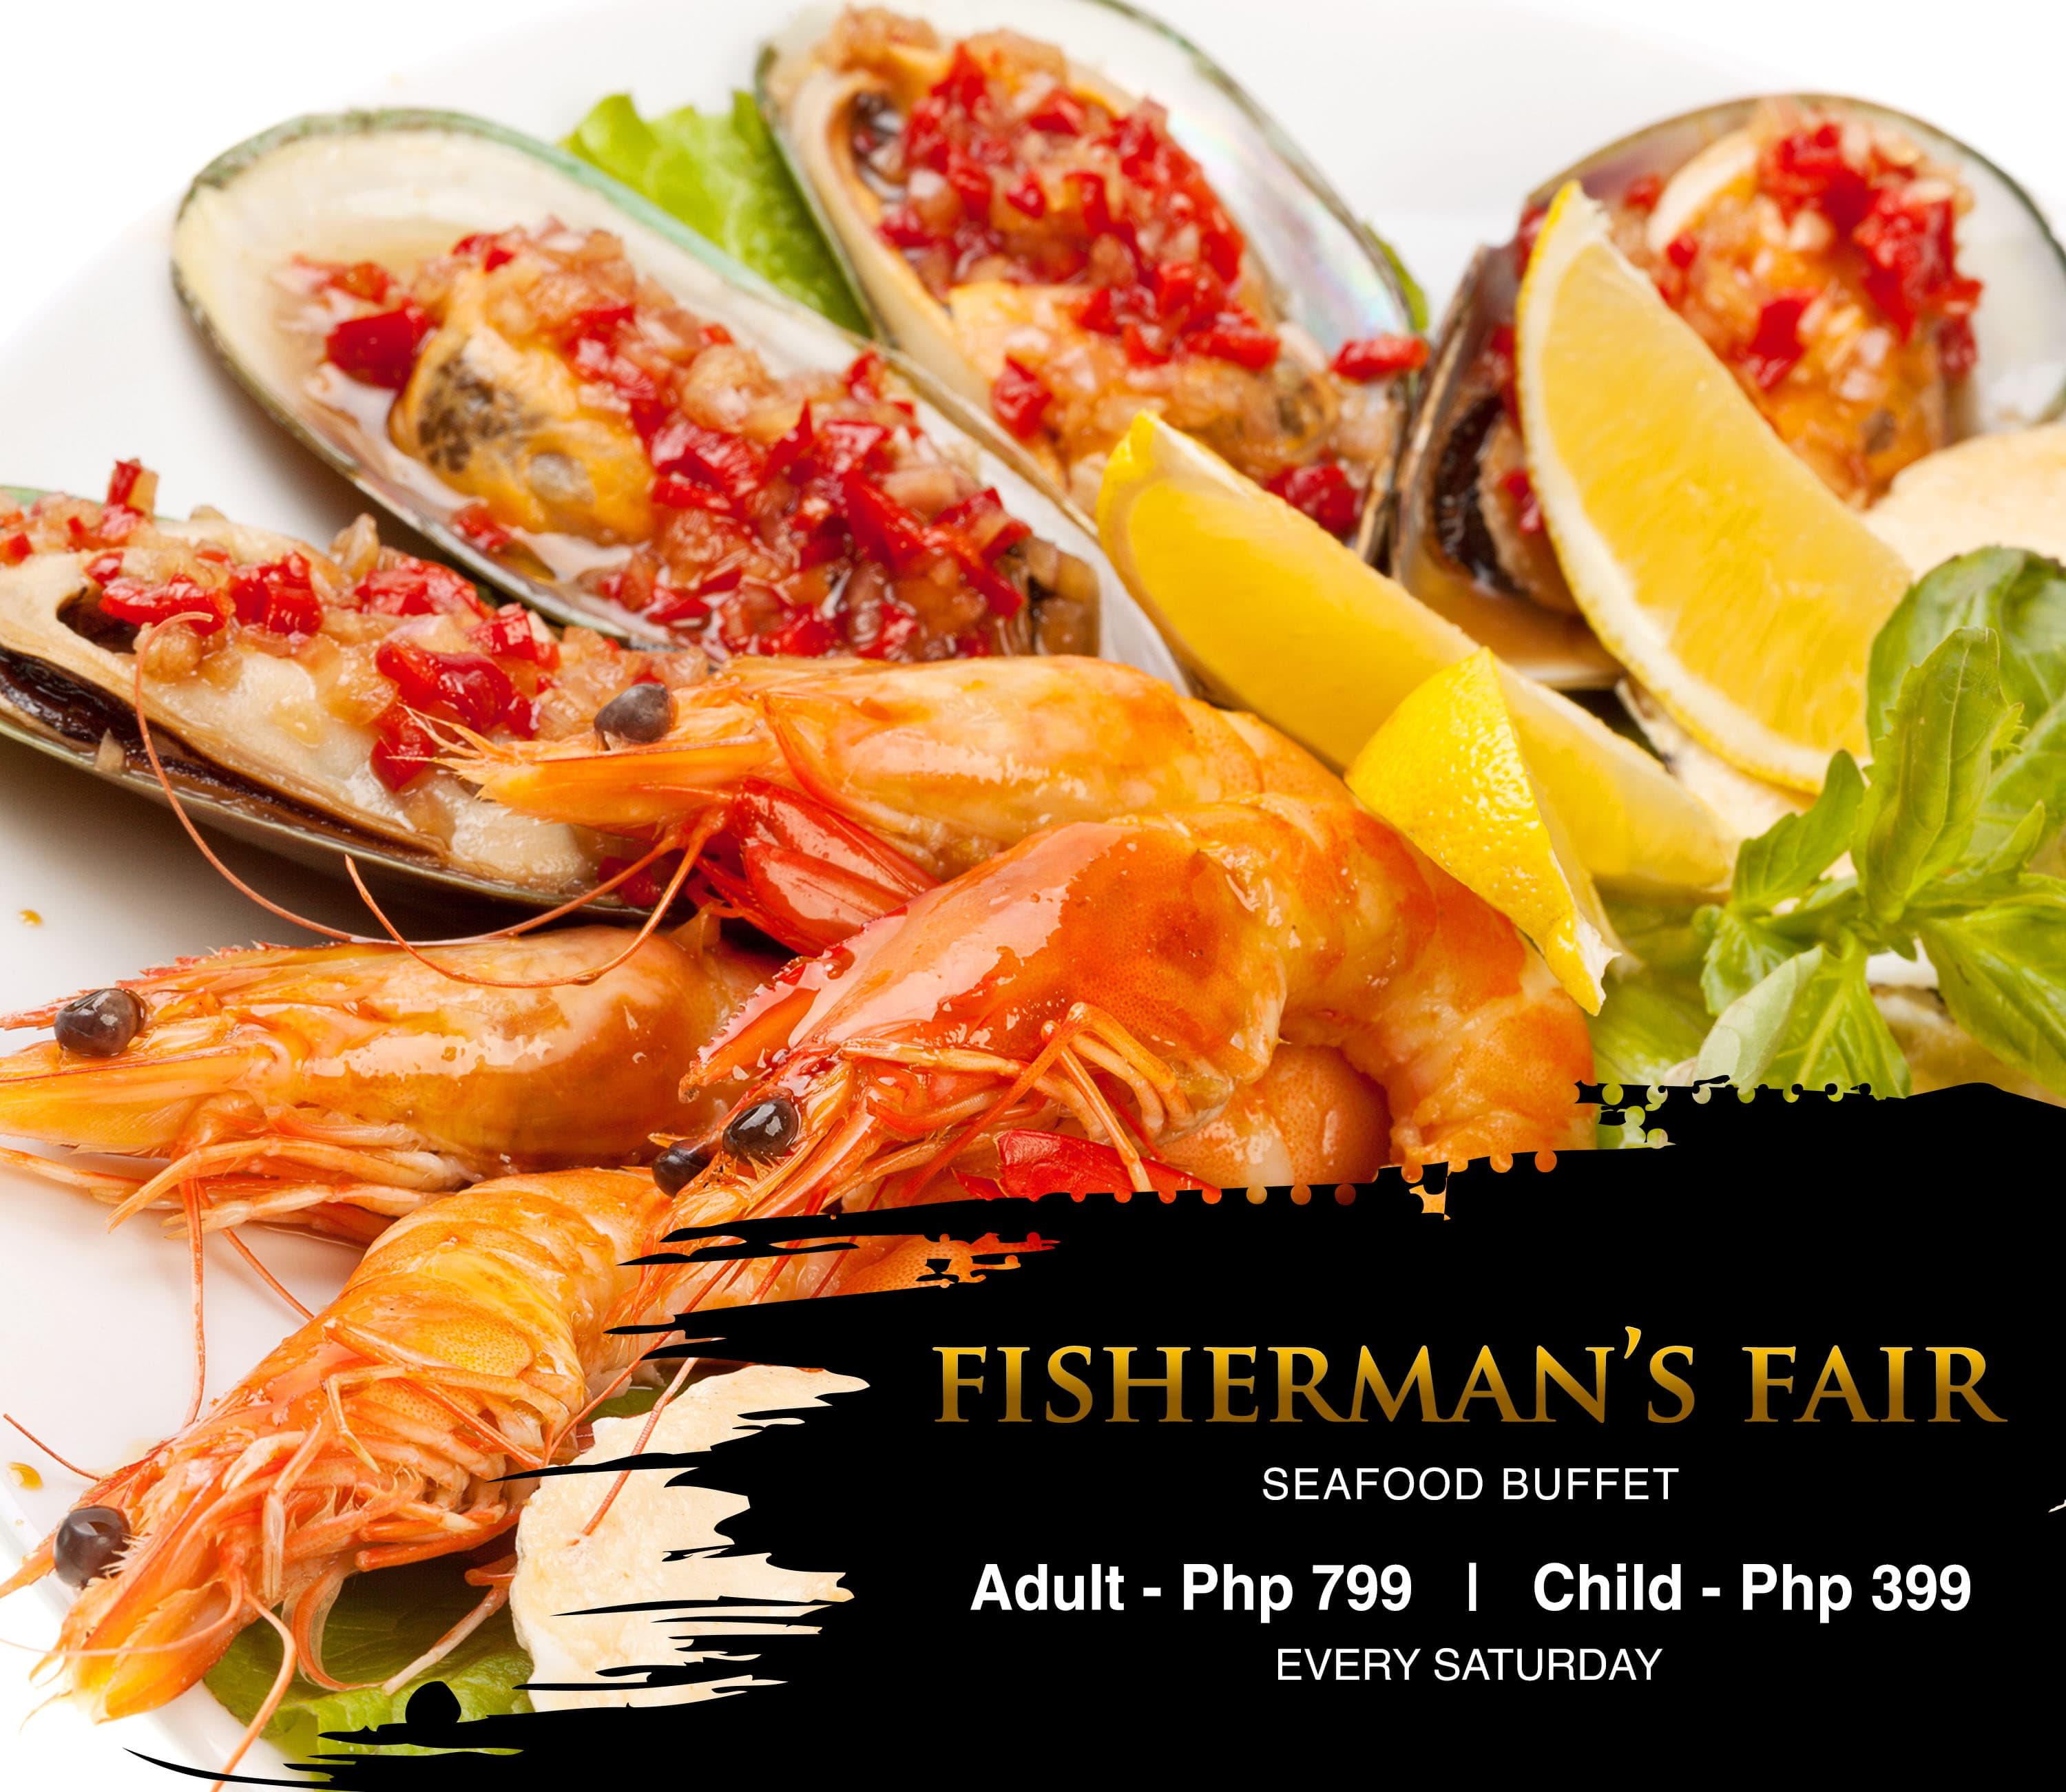 Fishersman's Fair Seafood Buffet